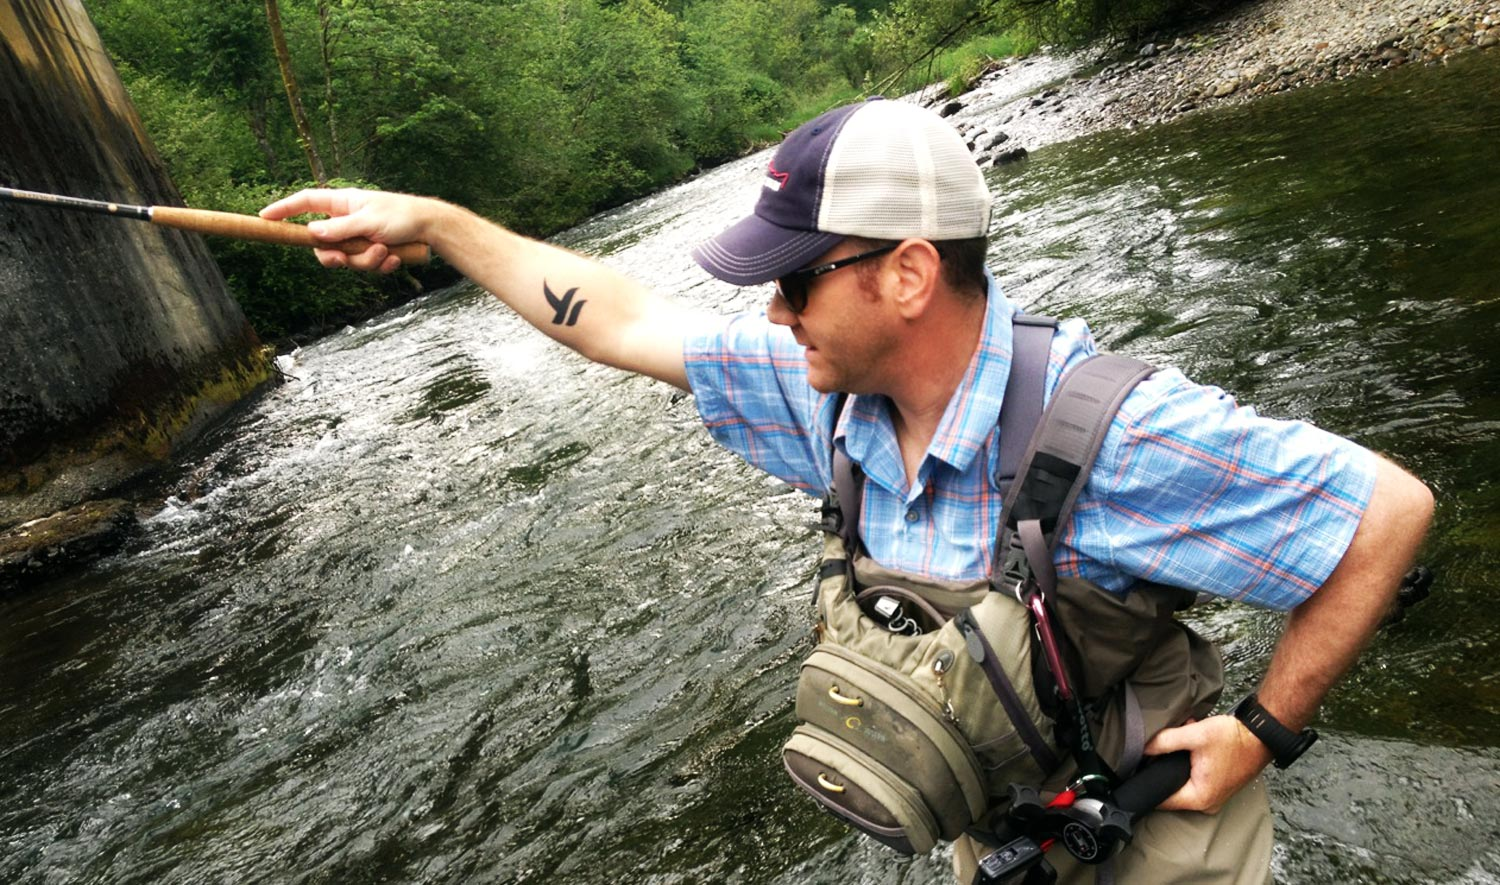 Chris Fahrenbruch on the South Fork Snoqualmie River Photo by Lex Story